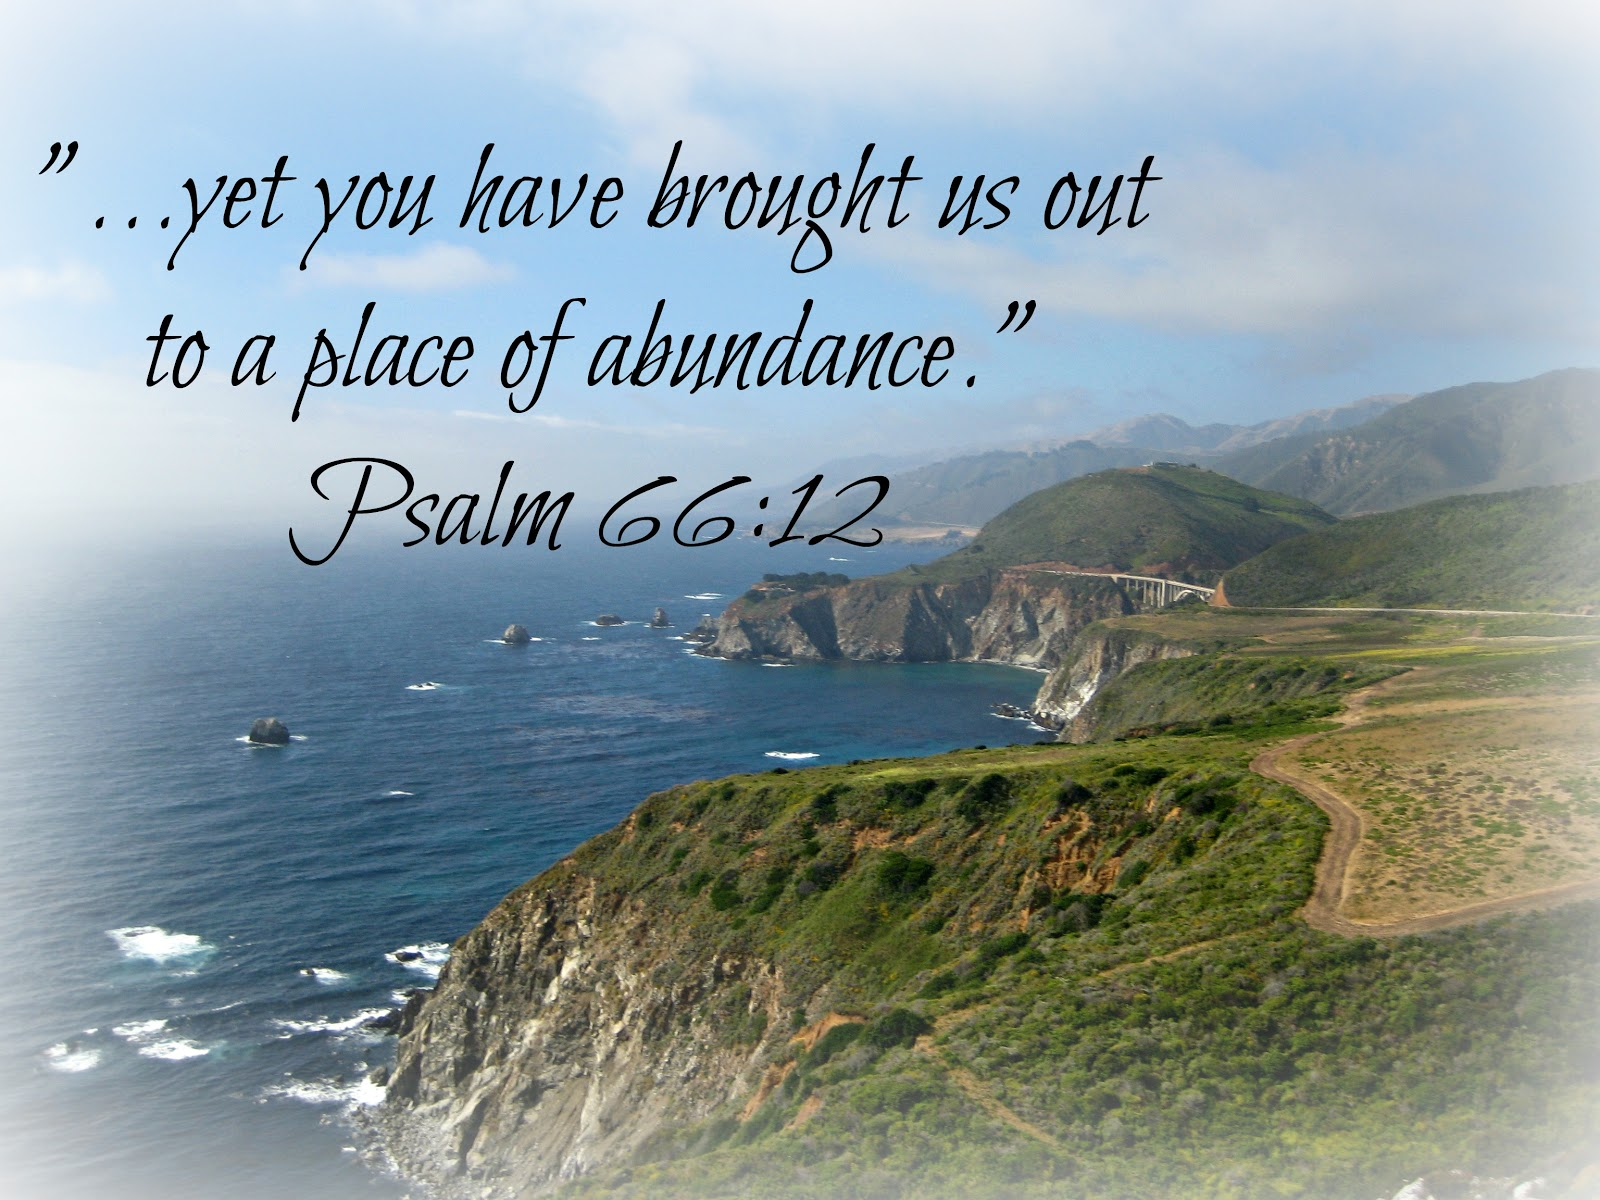 There's a place of abundance for my soul and that place is in resting ...